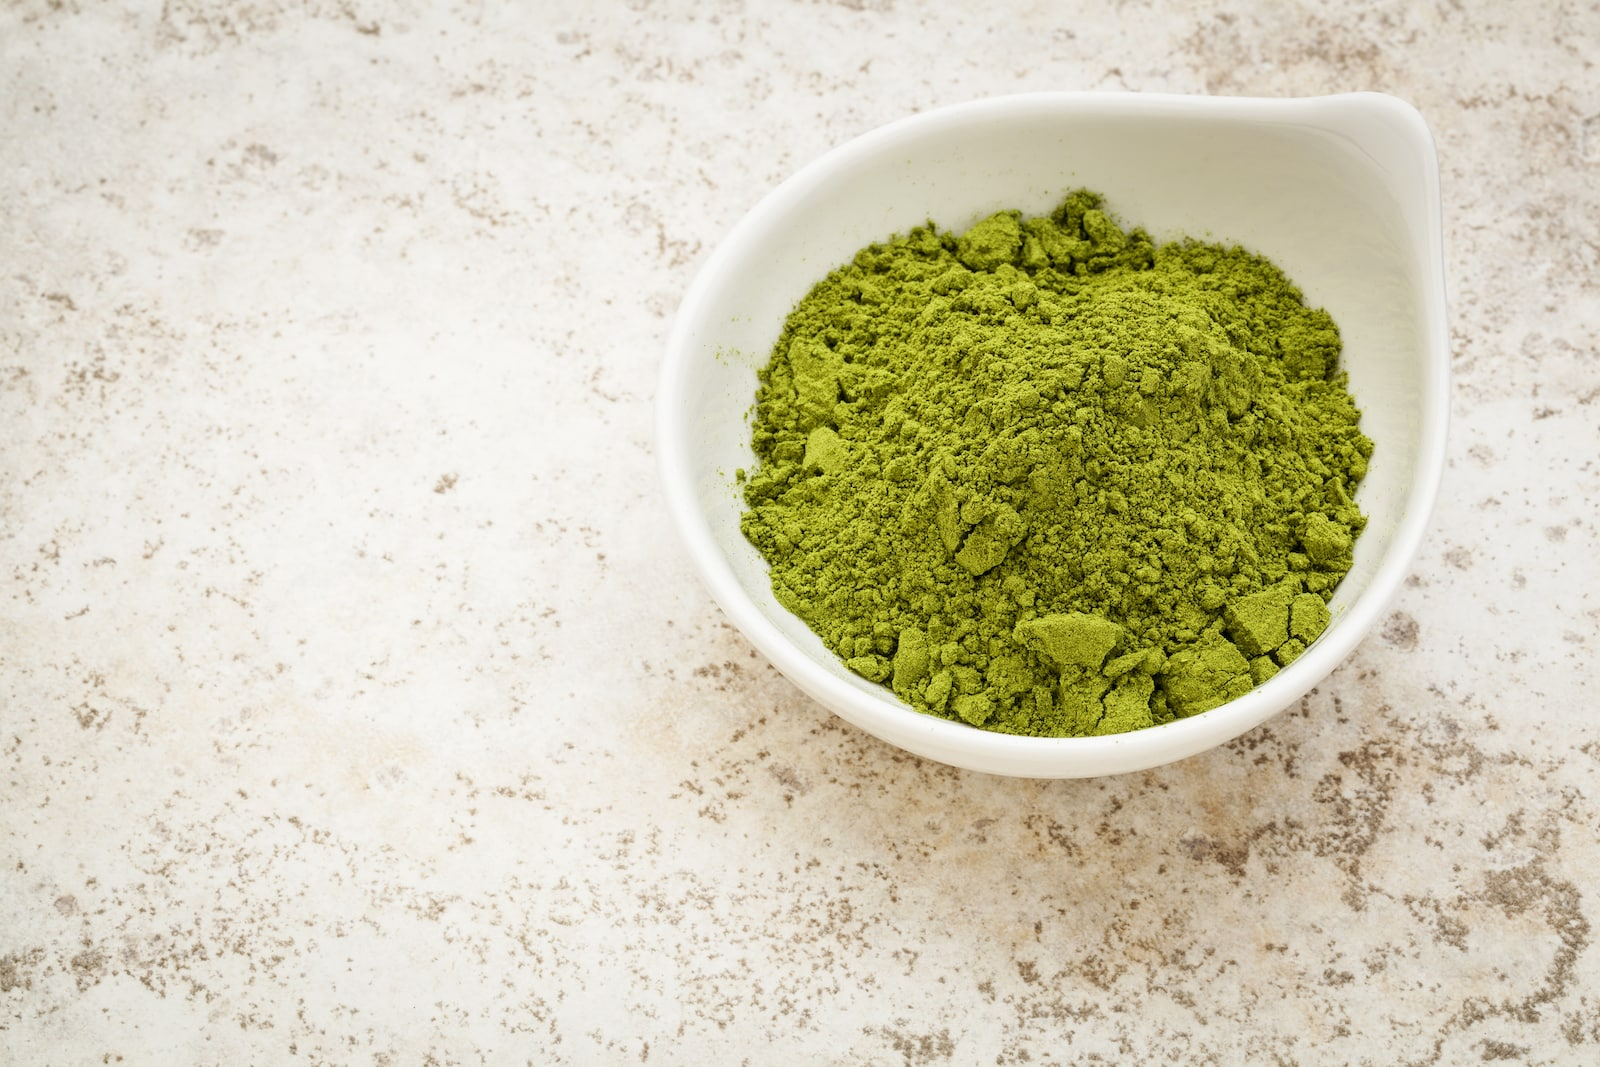 Moringa Powder Vs. Matcha: SPICEography Showdown